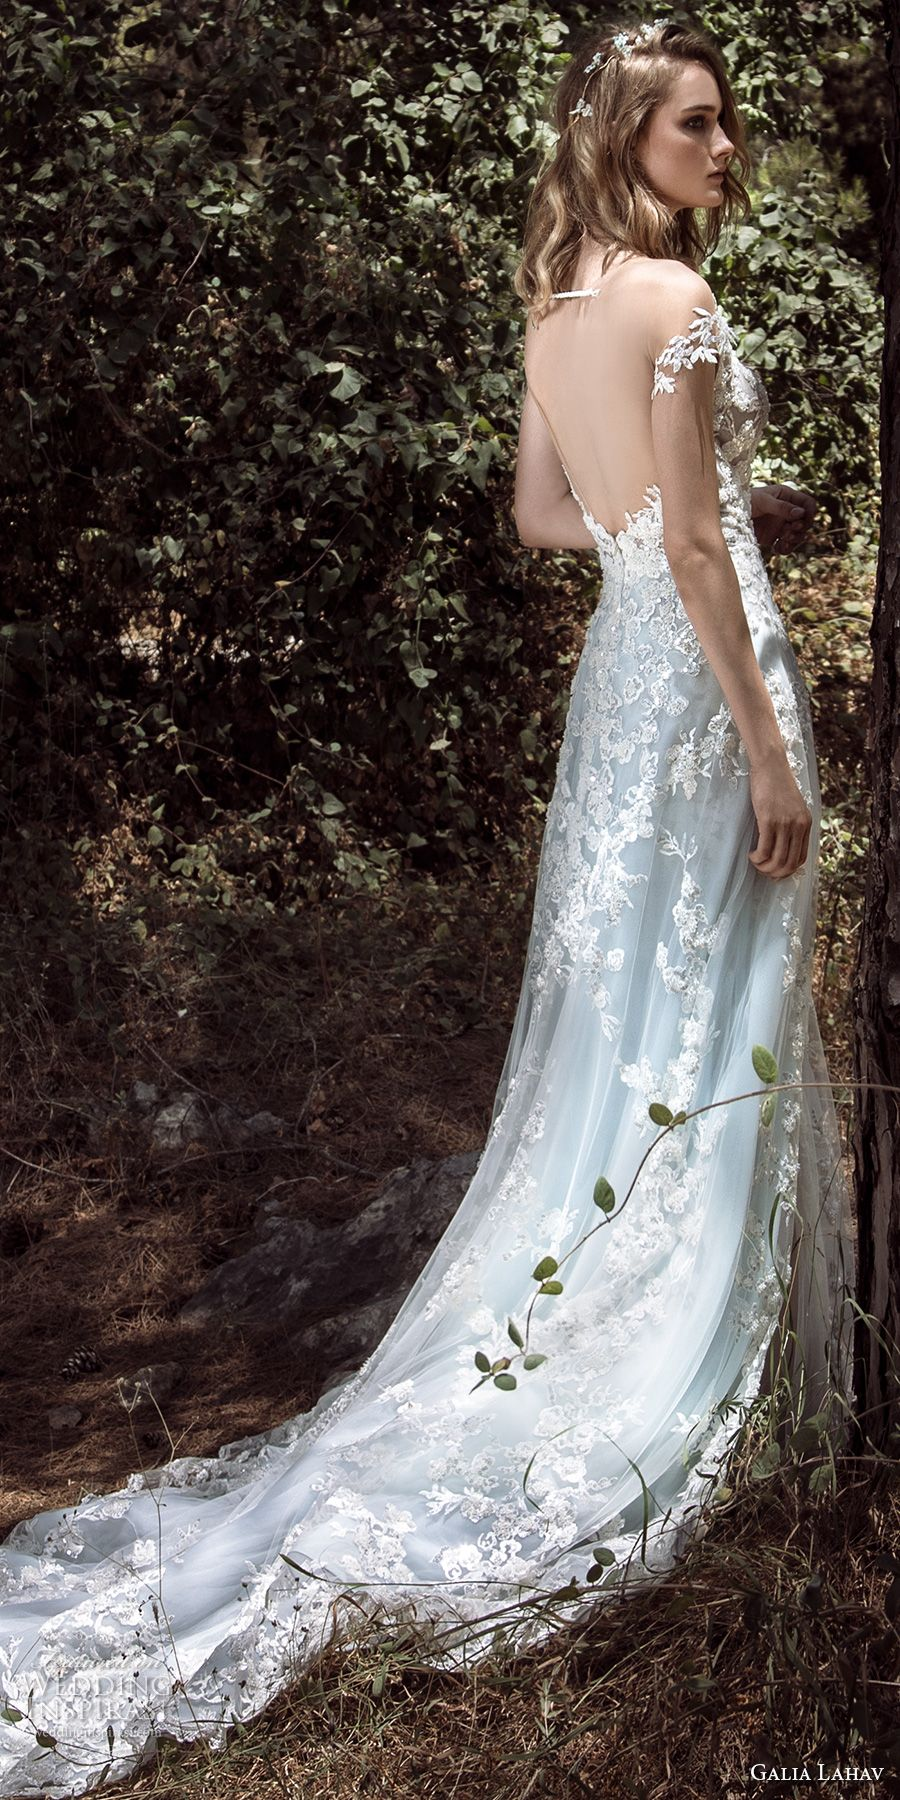 Gala by galia lahav wedding dresses u bridal collection no iv